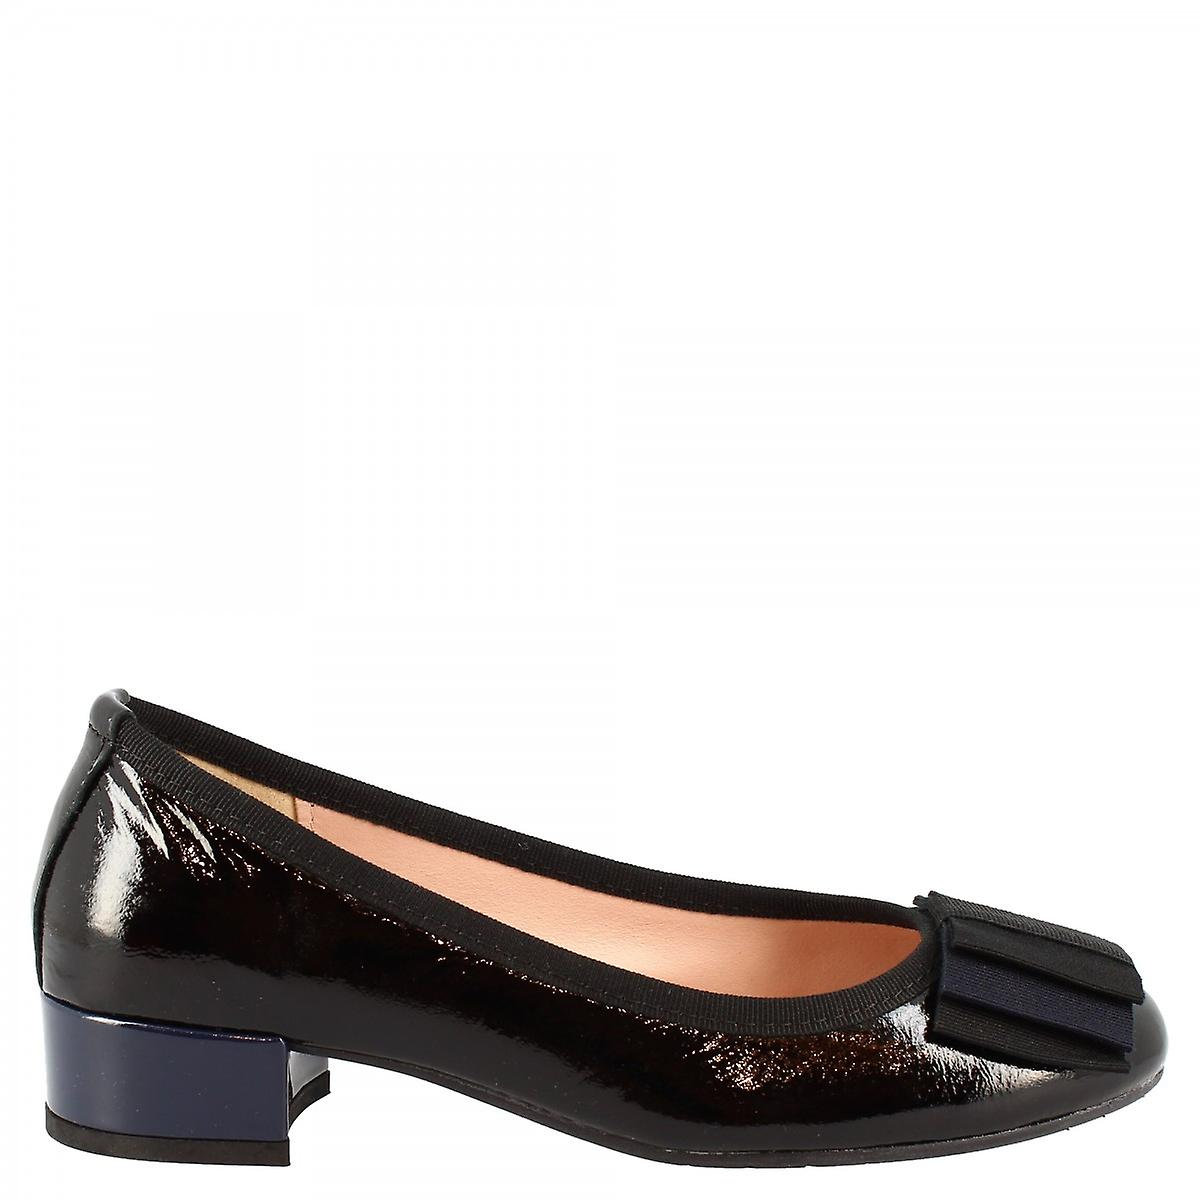 Women's handmade low heels pumps shoes in black laminated leather with bow